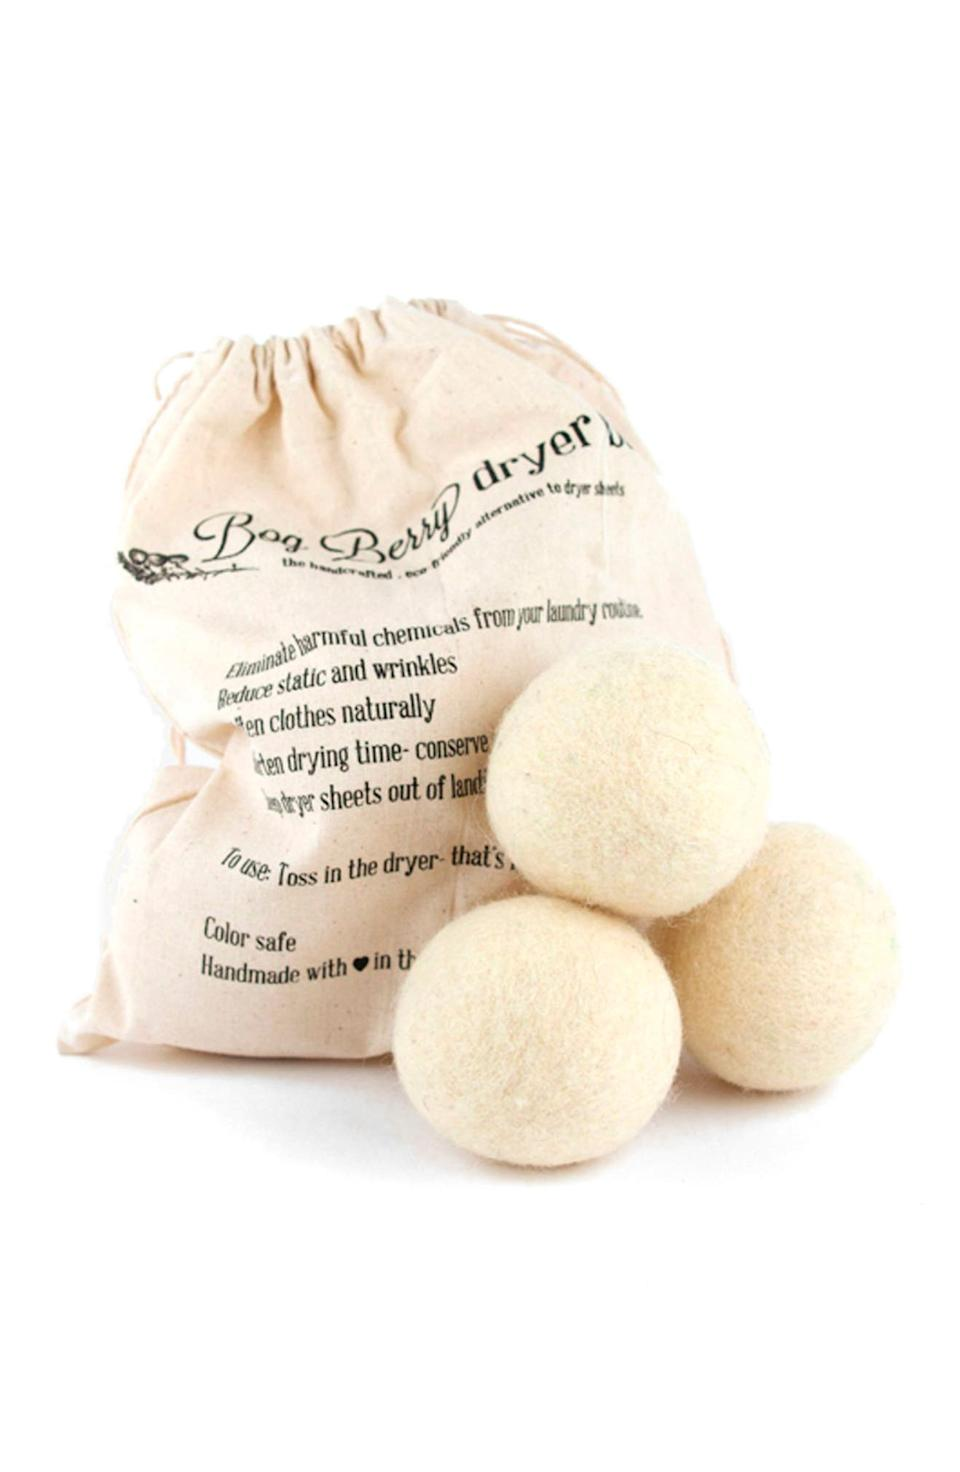 Package Free x Bog Berry Wool Dryer Balls. Image via Nordstrom.